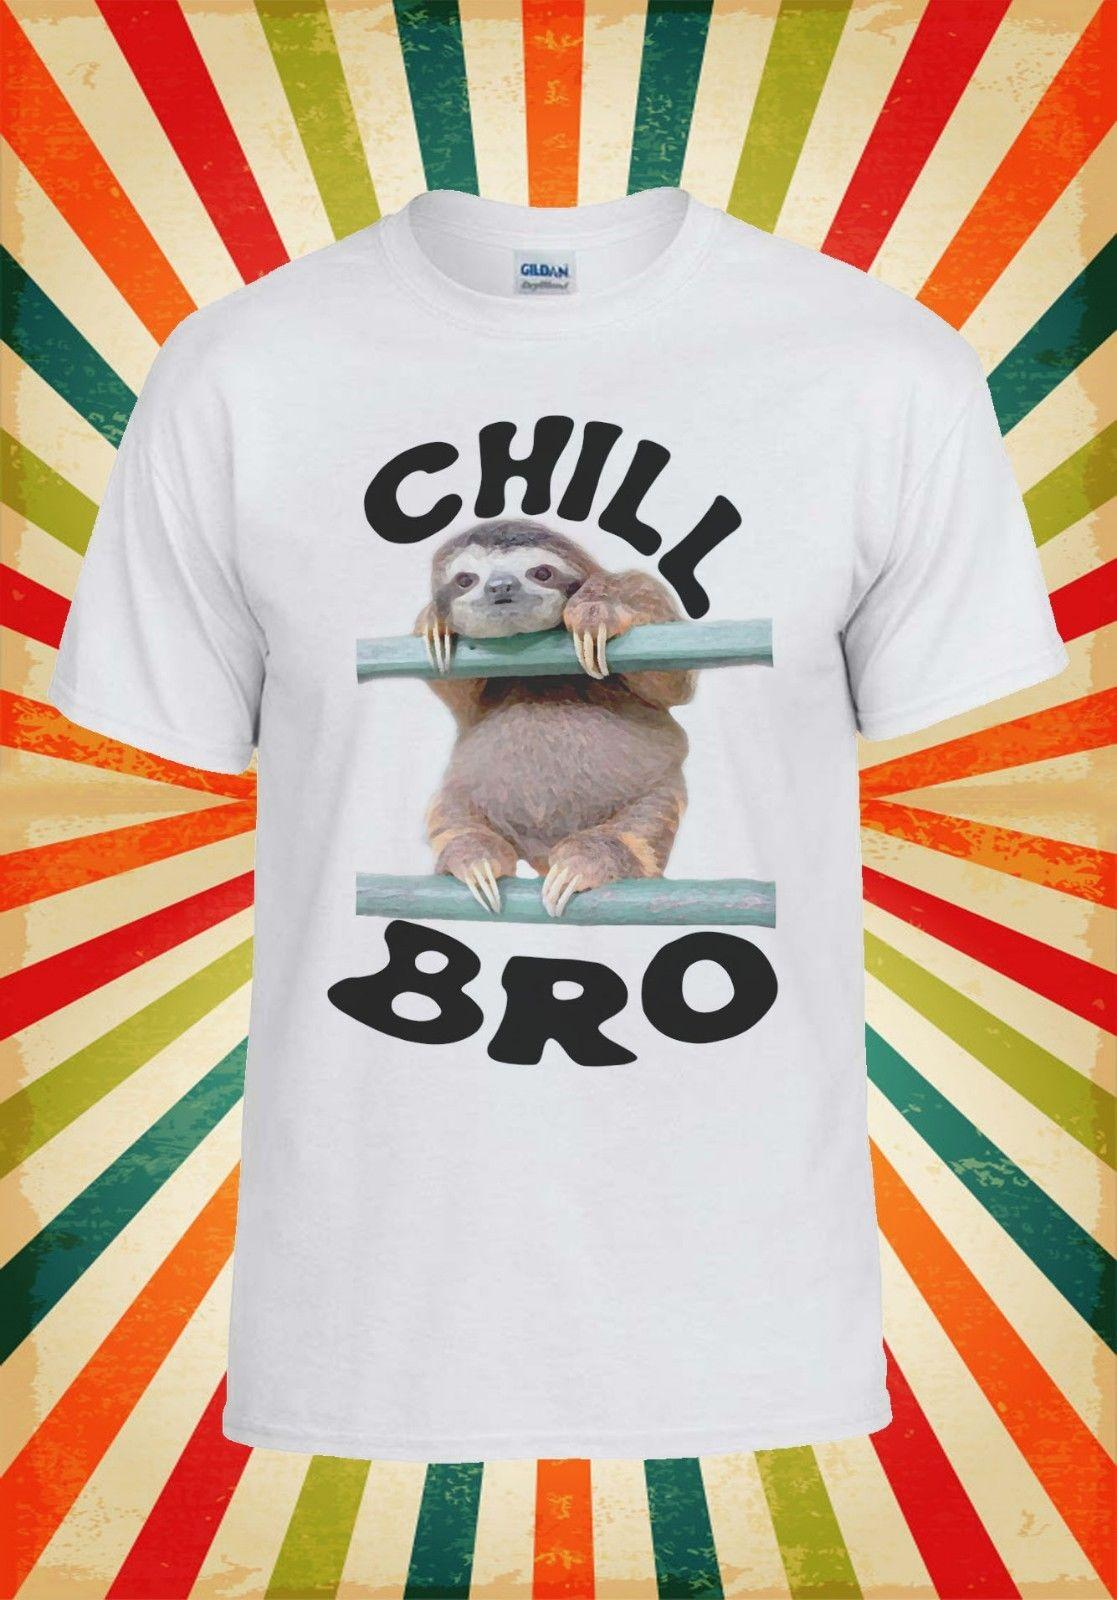 085ace852 Chill Bro Sloth Lazy Animal Novelty Men Women Vest Tank Top Unisex T Shirt  1060 Funny Tees Shirts MENS T SHIRT Printed T Shirts In A Day Awesome Tee  Shirt ...